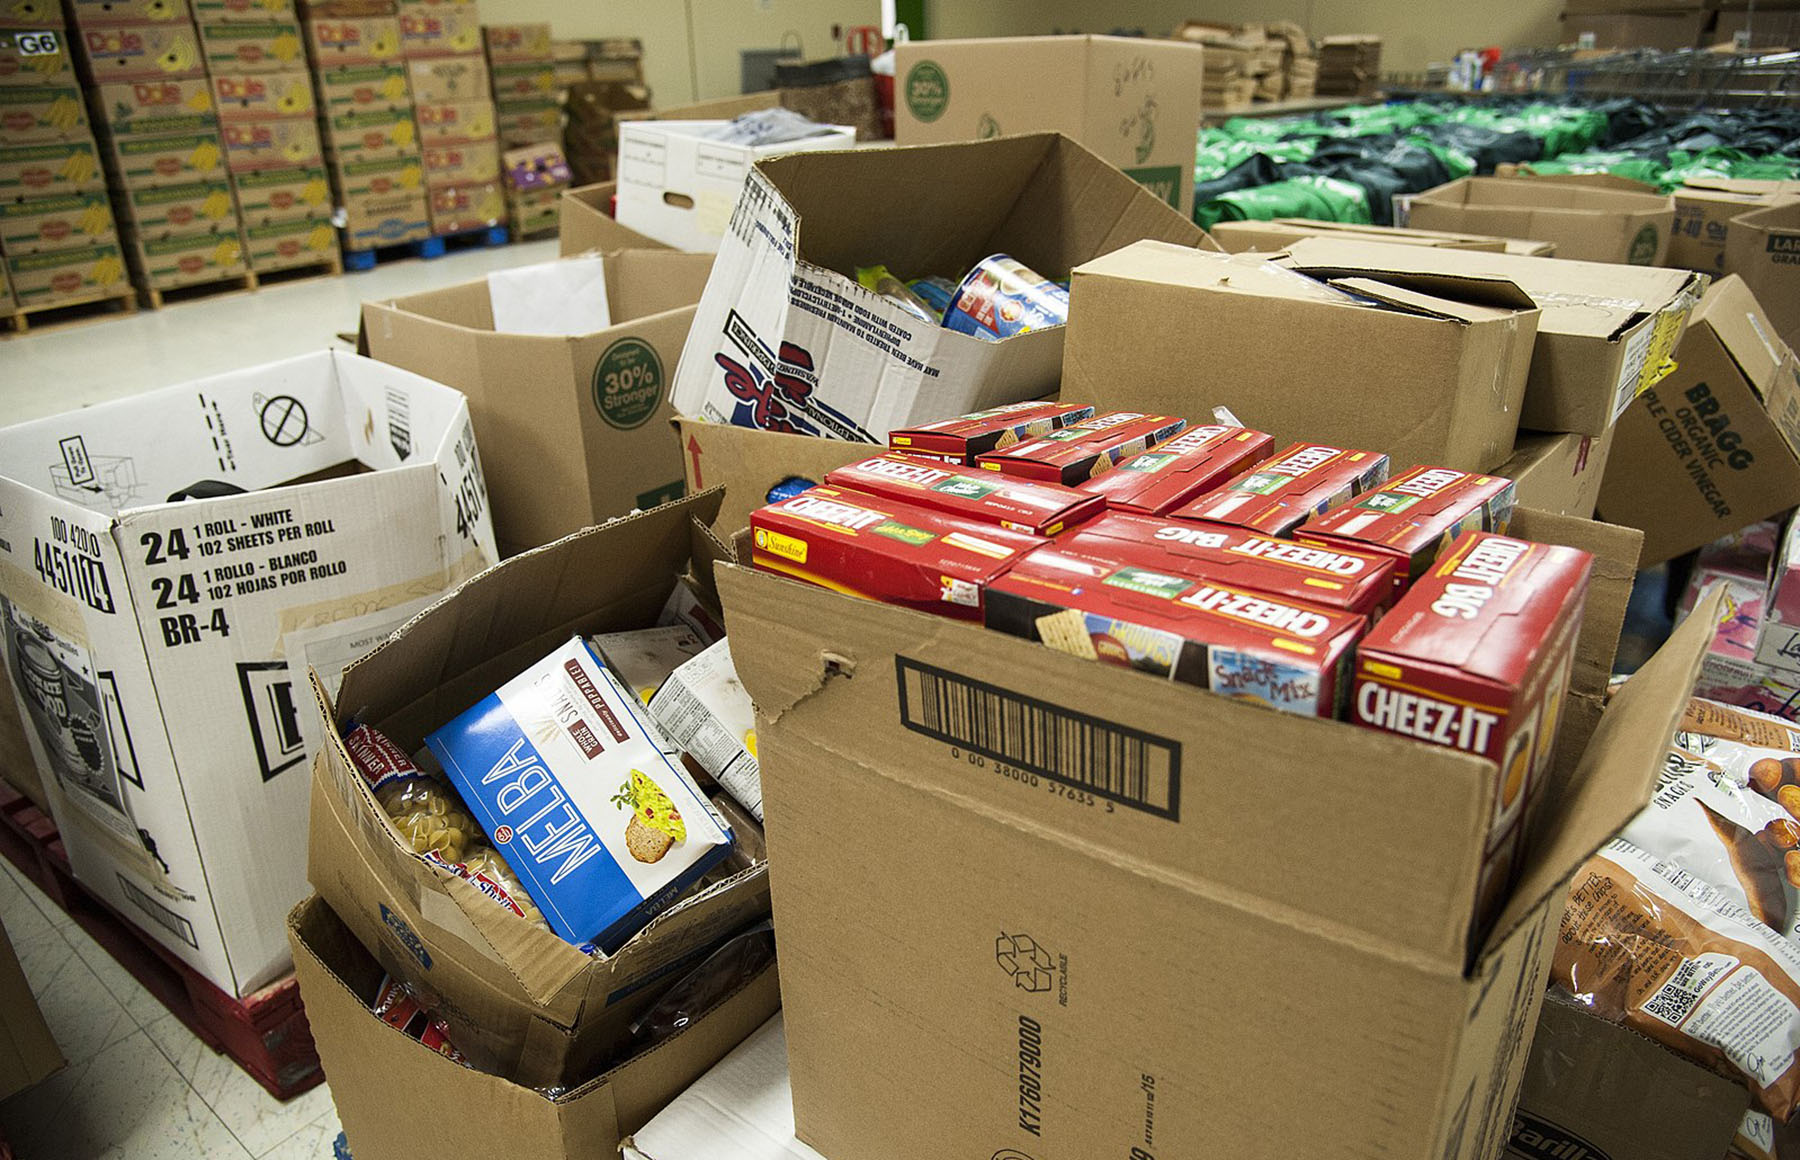 Not everything is back to normal at Berkeley Food Pantry sites